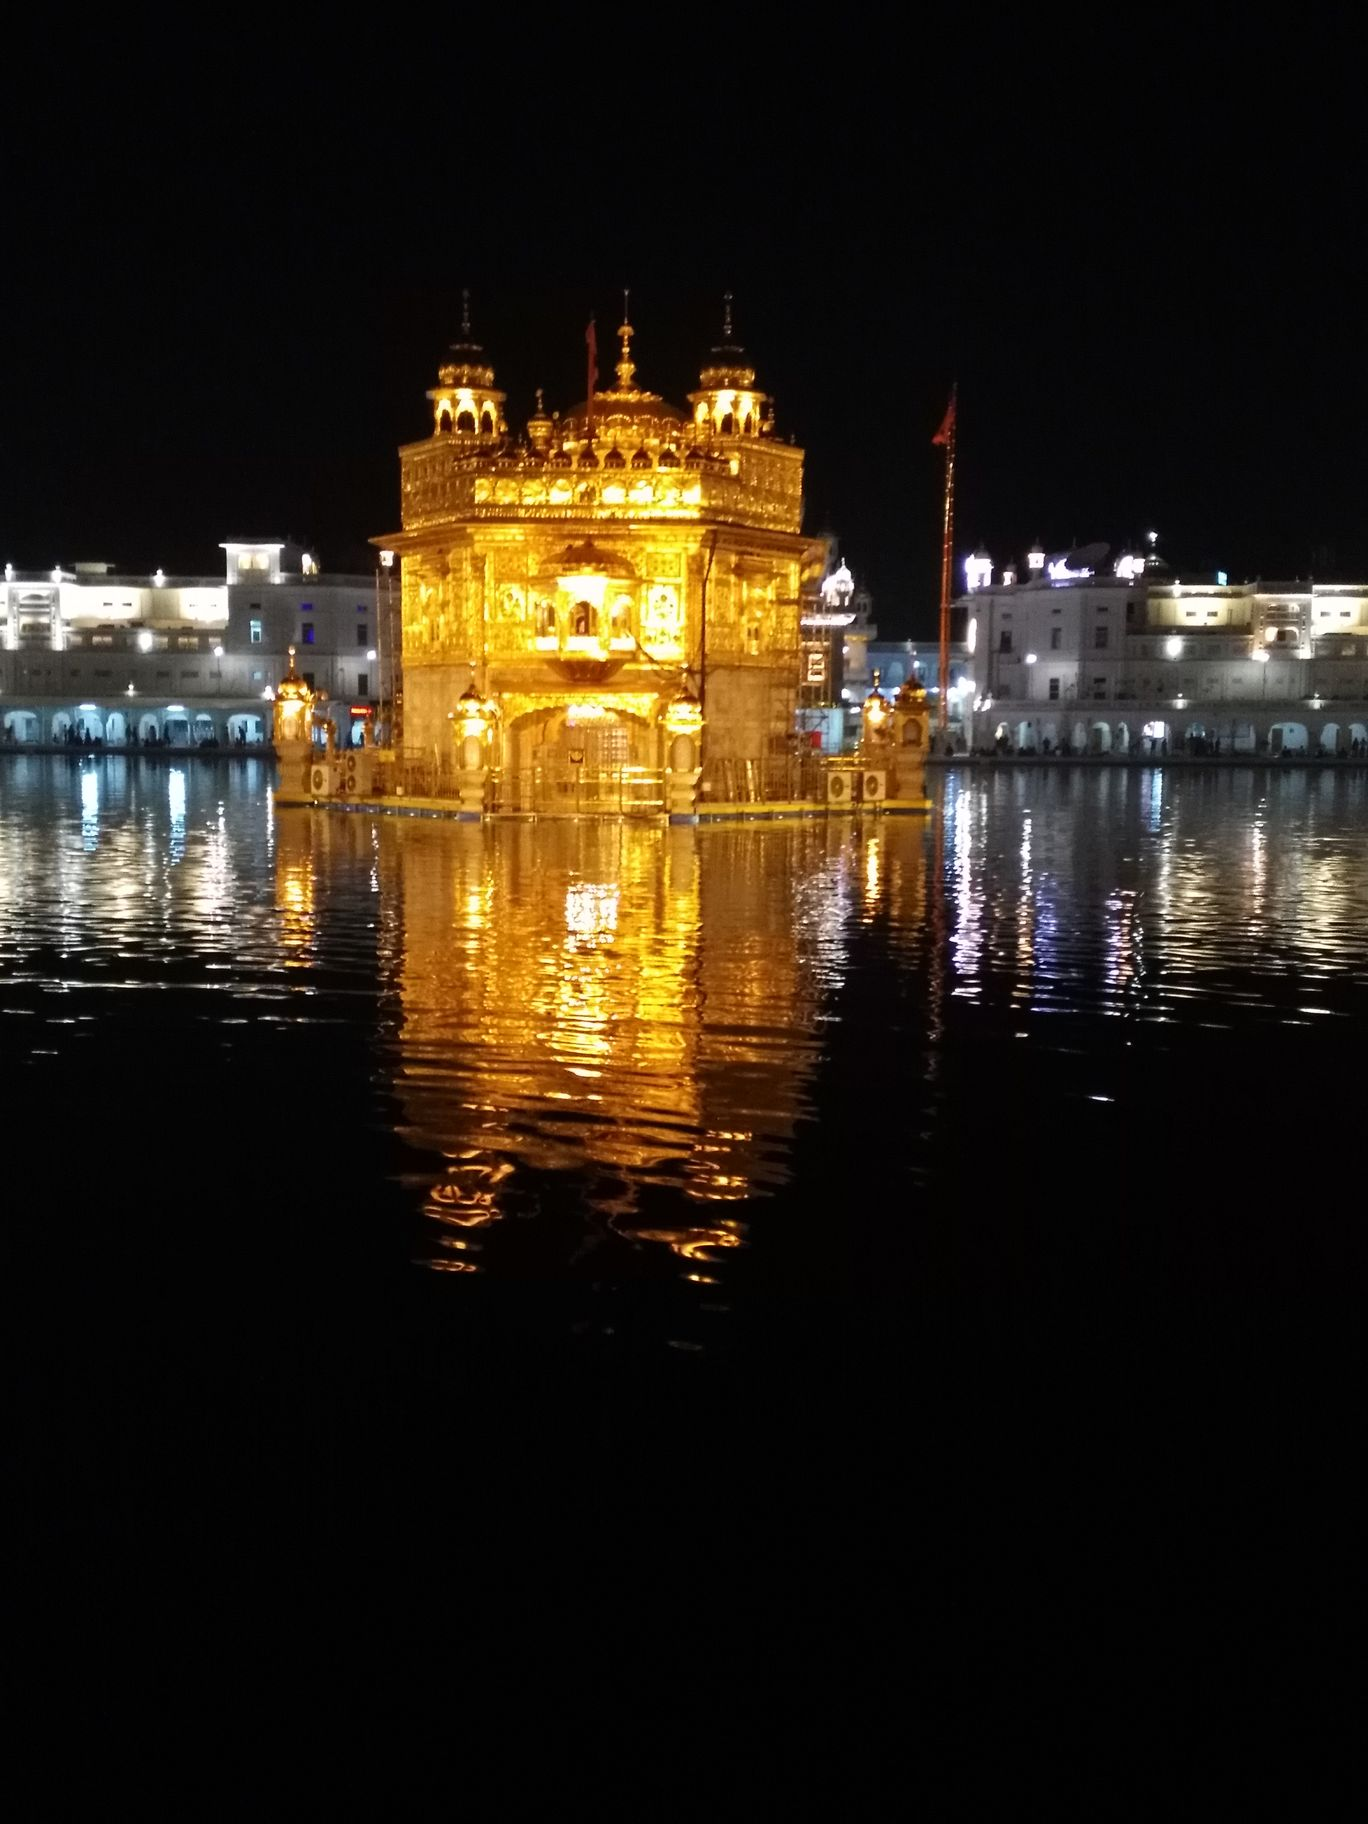 Photo of Golden Temple Amritsar - Tour Packages - Sightseeings By Nerissa